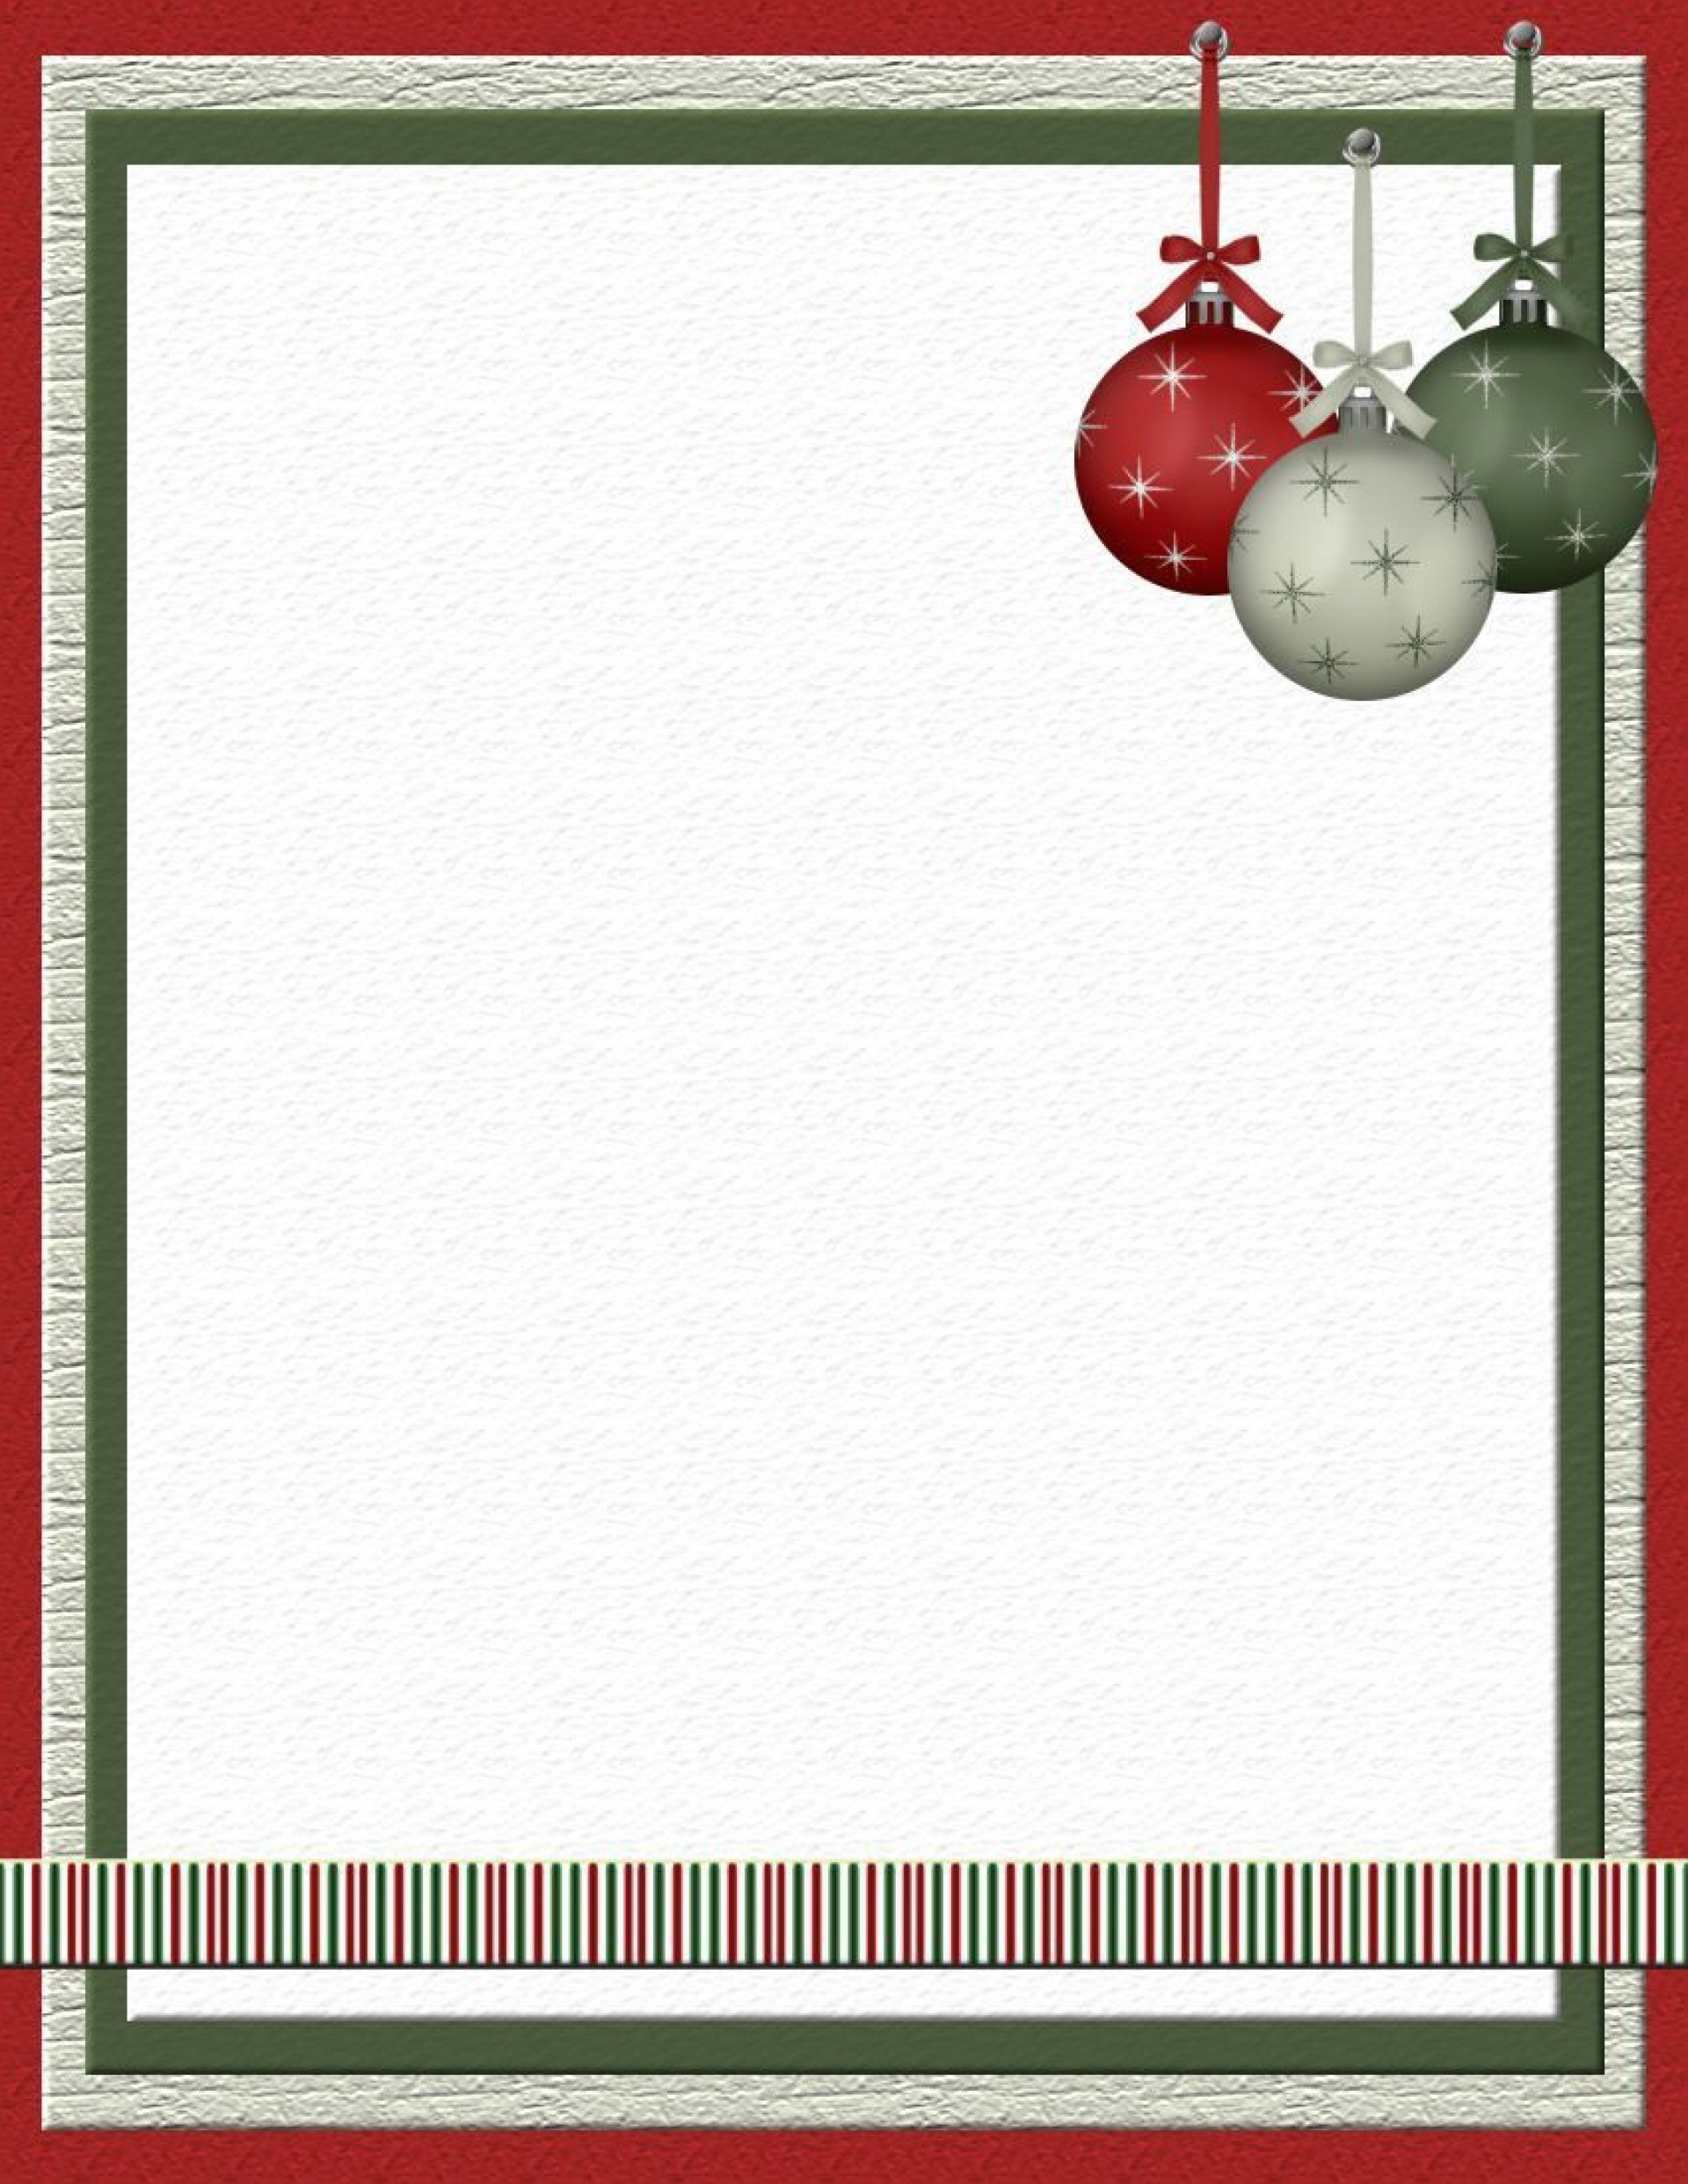 002 Breathtaking Christma Template Free Download Concept  Word Editable Card Tree1920